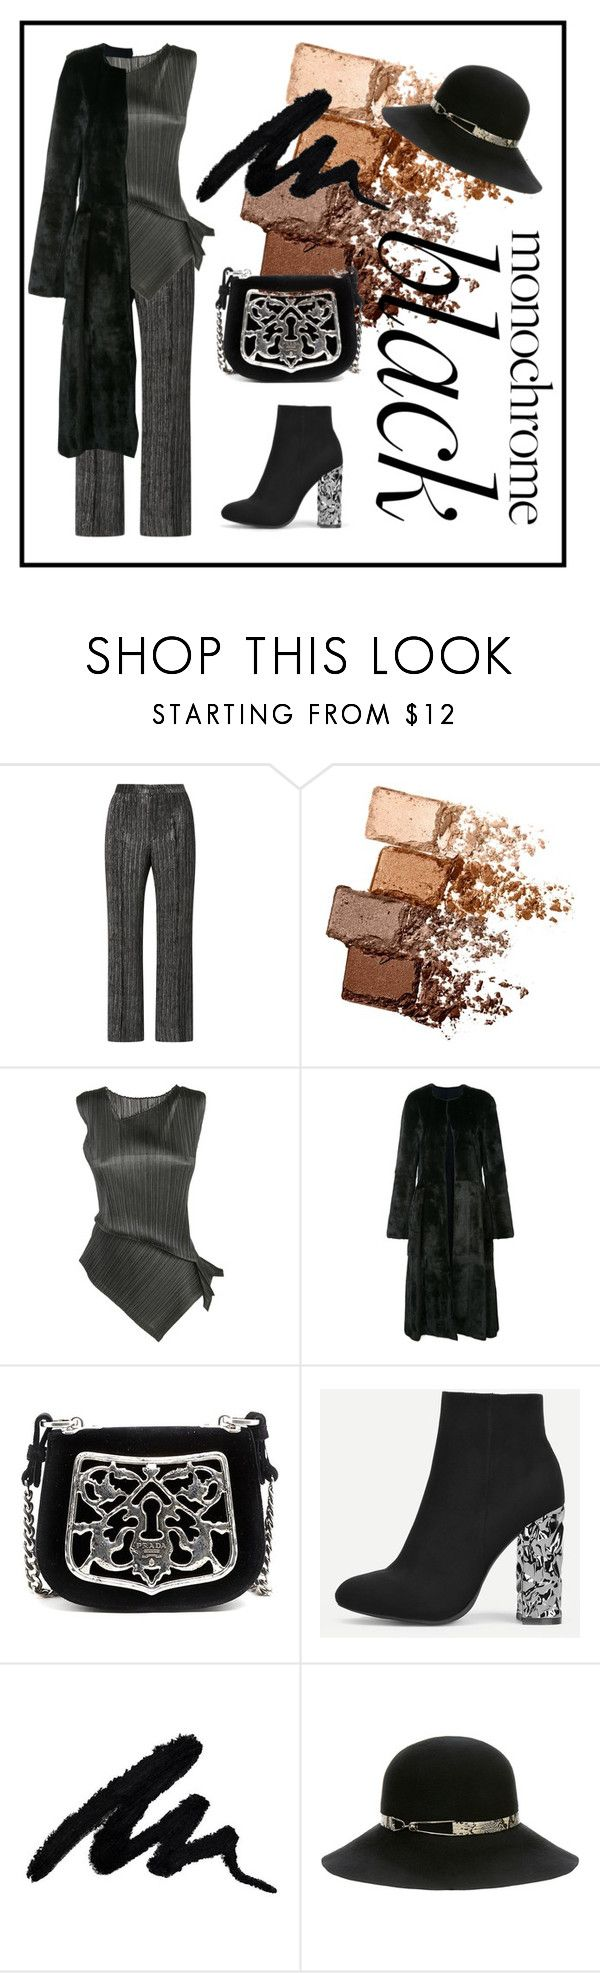 """""""#14 Mission Monochrome: All-Black Outfit"""" by natahaya ❤ liked on Polyvore featuring Isabel Marant, Maybelline, Pleats Please by Issey Miyake, Oscar de la Renta, Prada, Eugenia Kim, monochrome, contest, blackoutfit and allblackoutfit"""